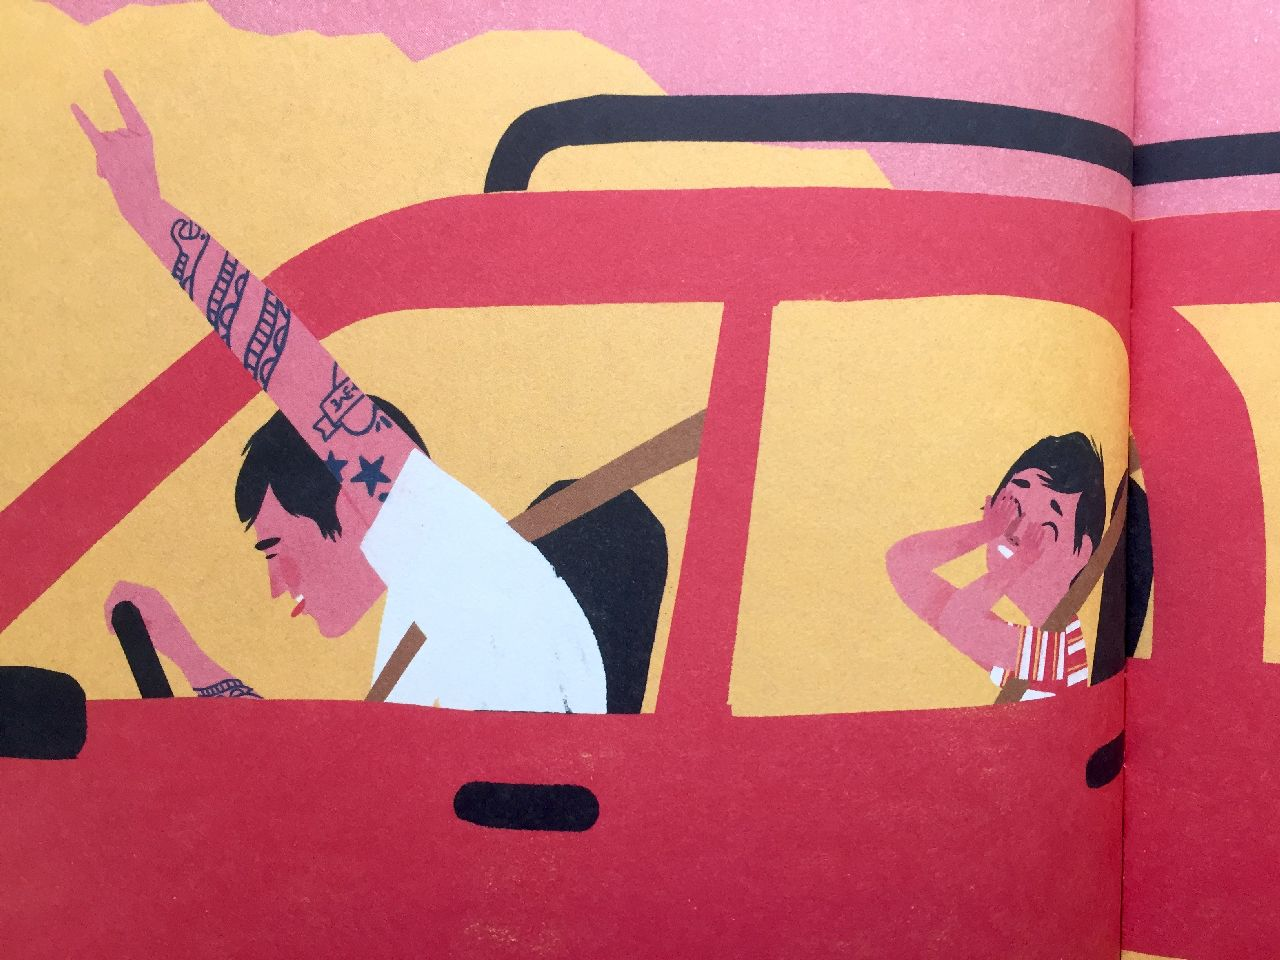 Keith Negley, My dad used to be so cool, Flying Eye books